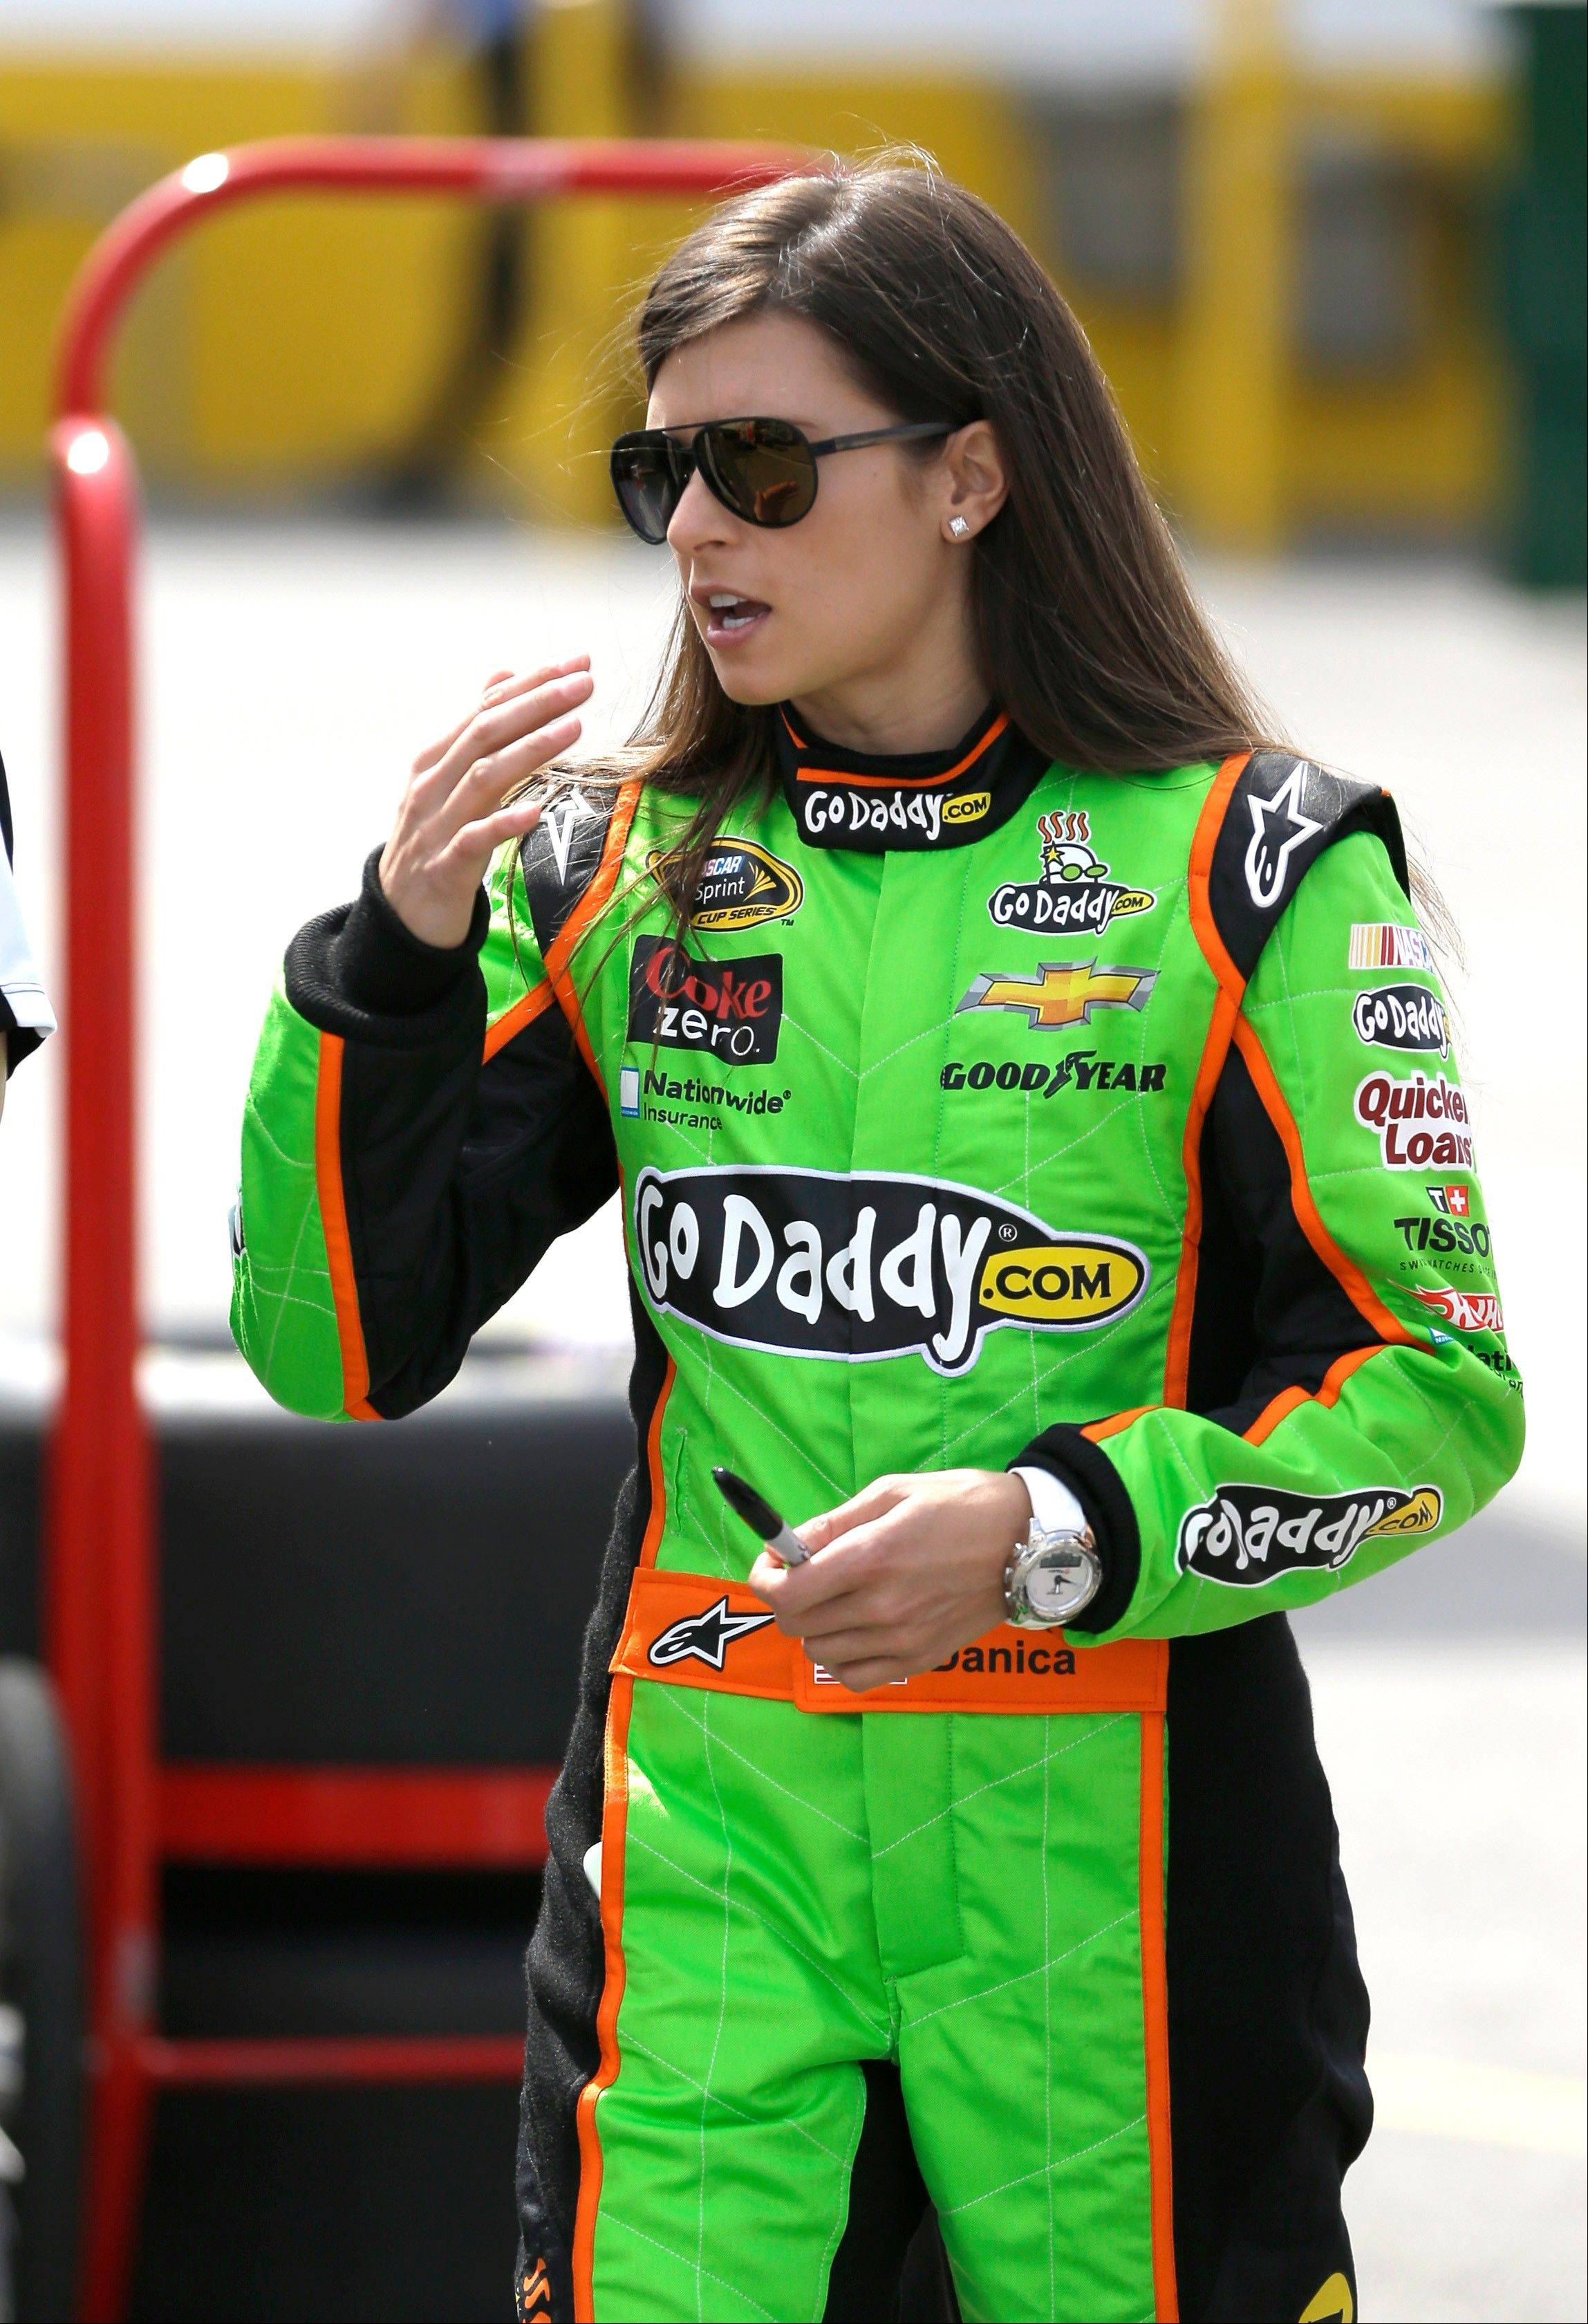 Danica Patrick walks to her hauler in the garage area during a practice session for the NASCAR Daytona 500 Sprint Cup Series auto race at Daytona International Speedway, Fr